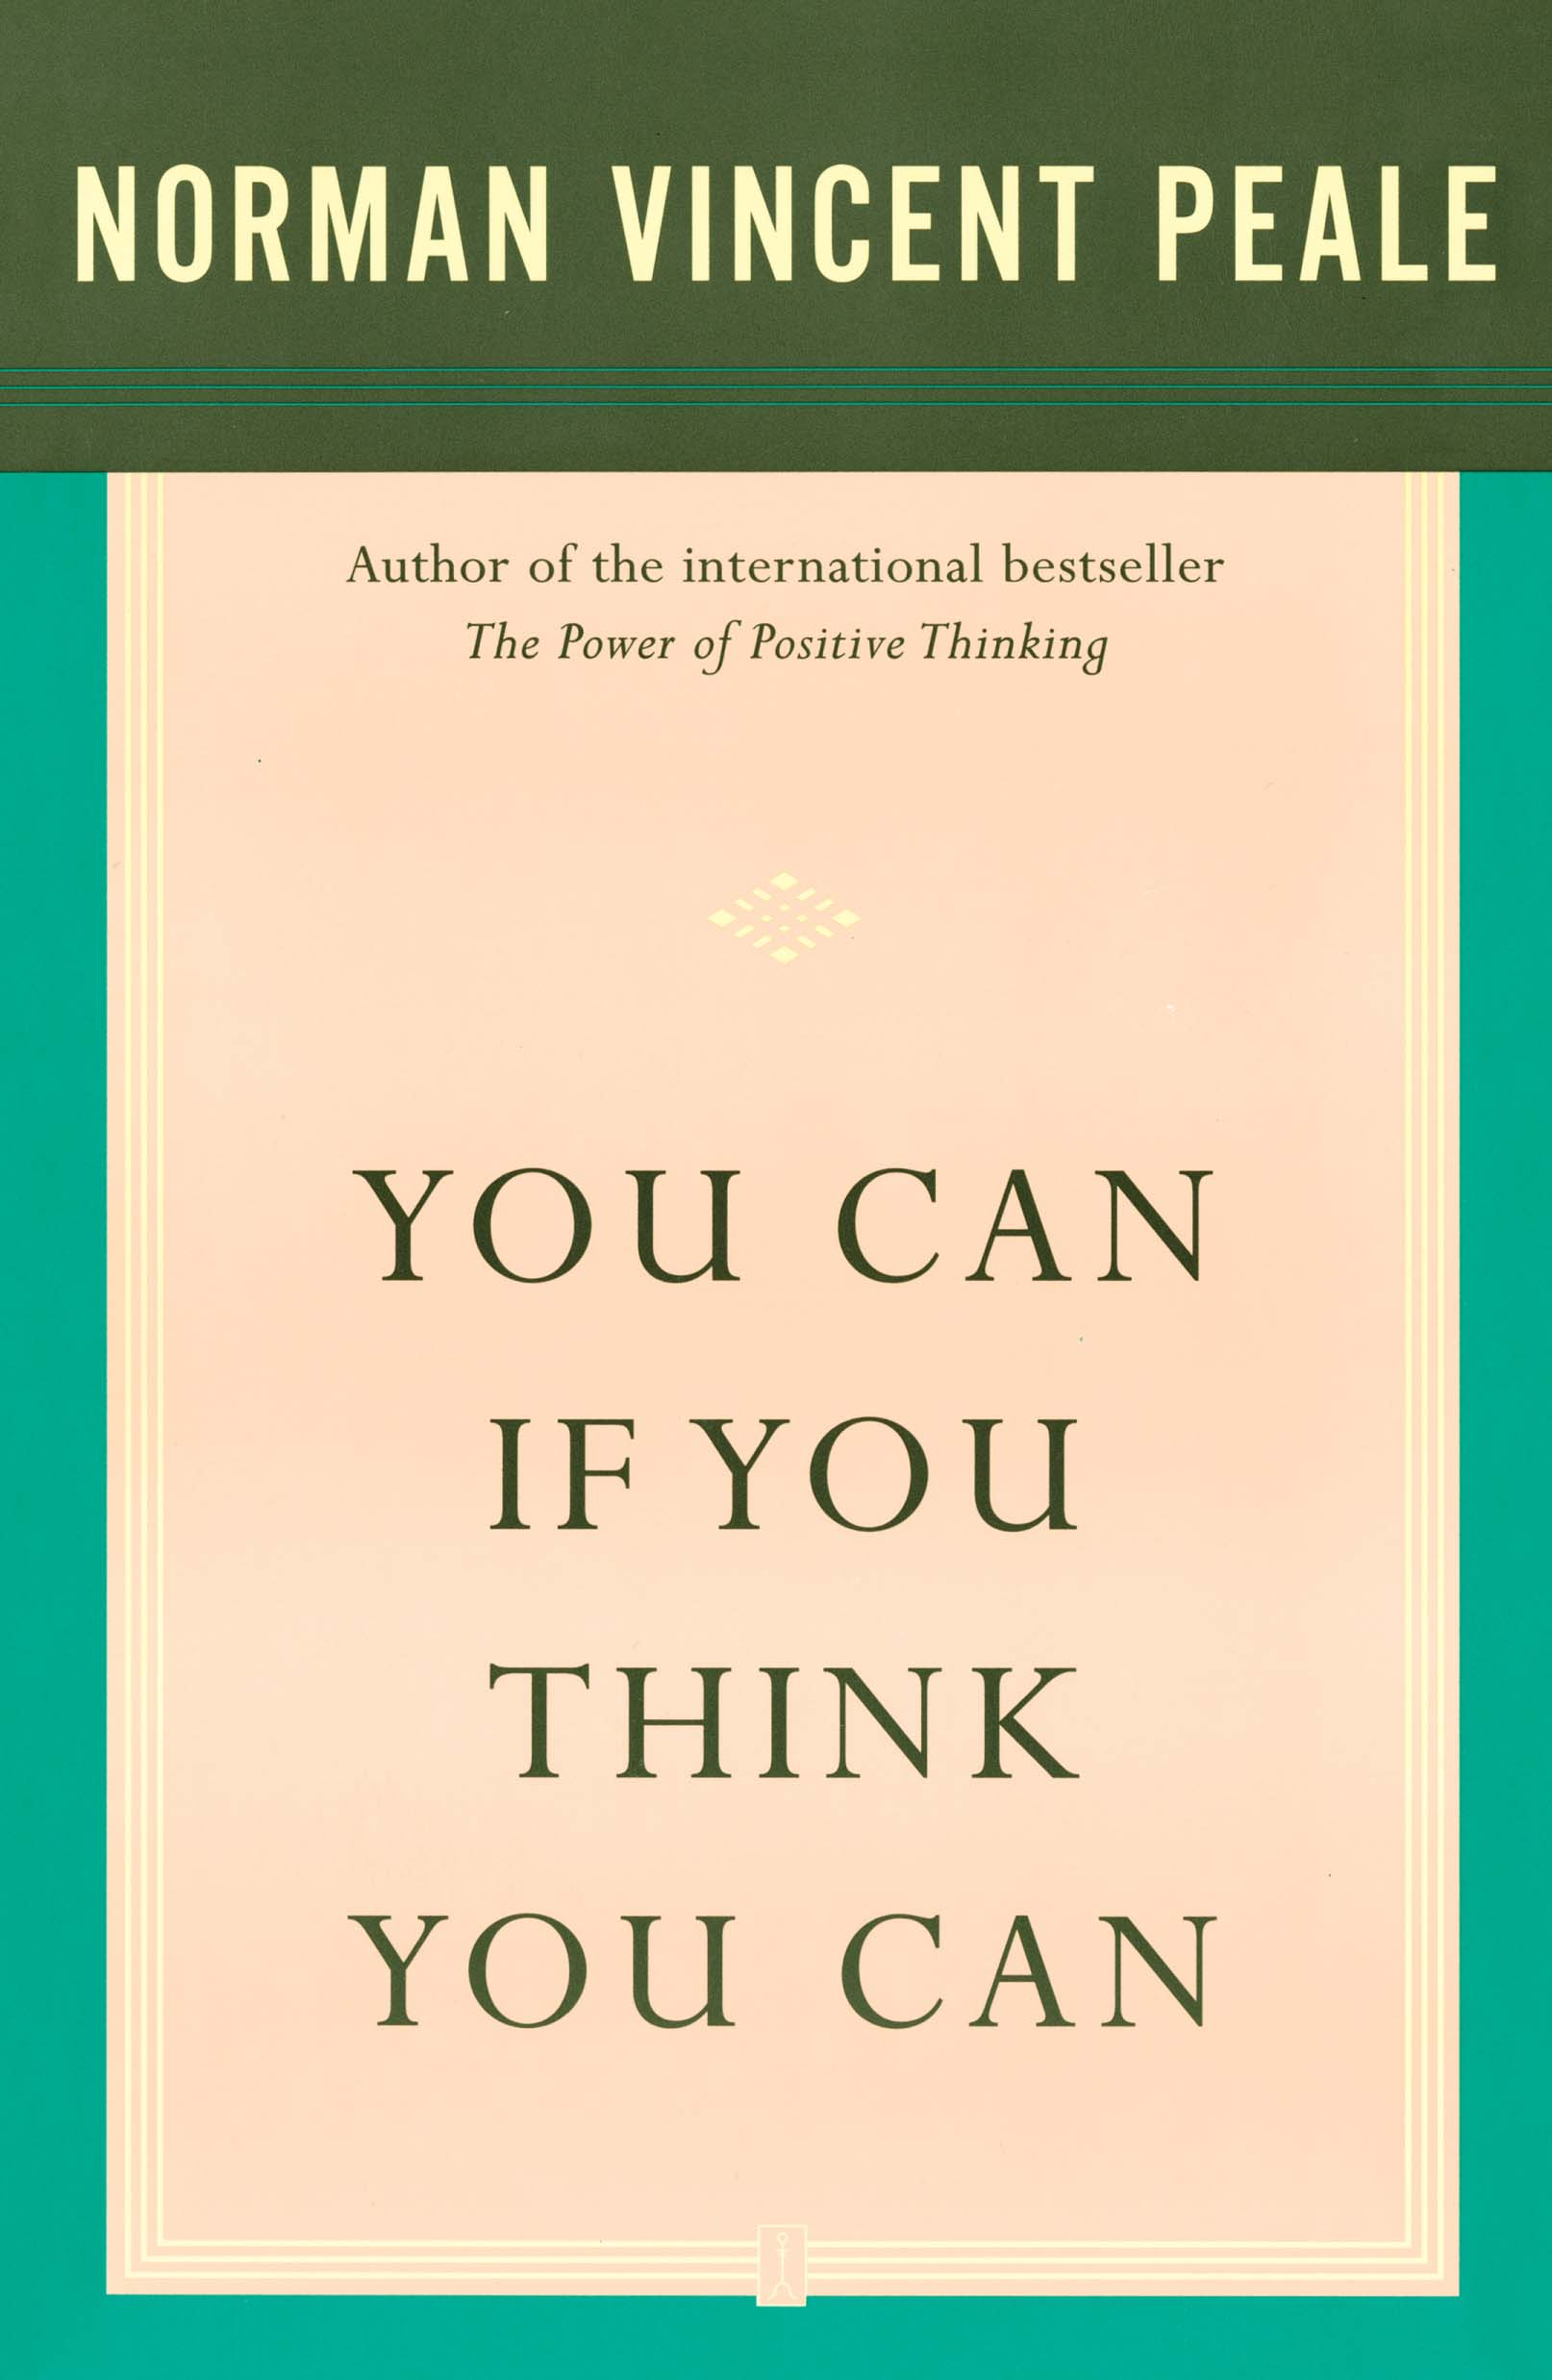 You Can If You Think You Can   Book by Dr. Norman Vincent Peale   Official Publisher Page   Simon & Schuster Canada